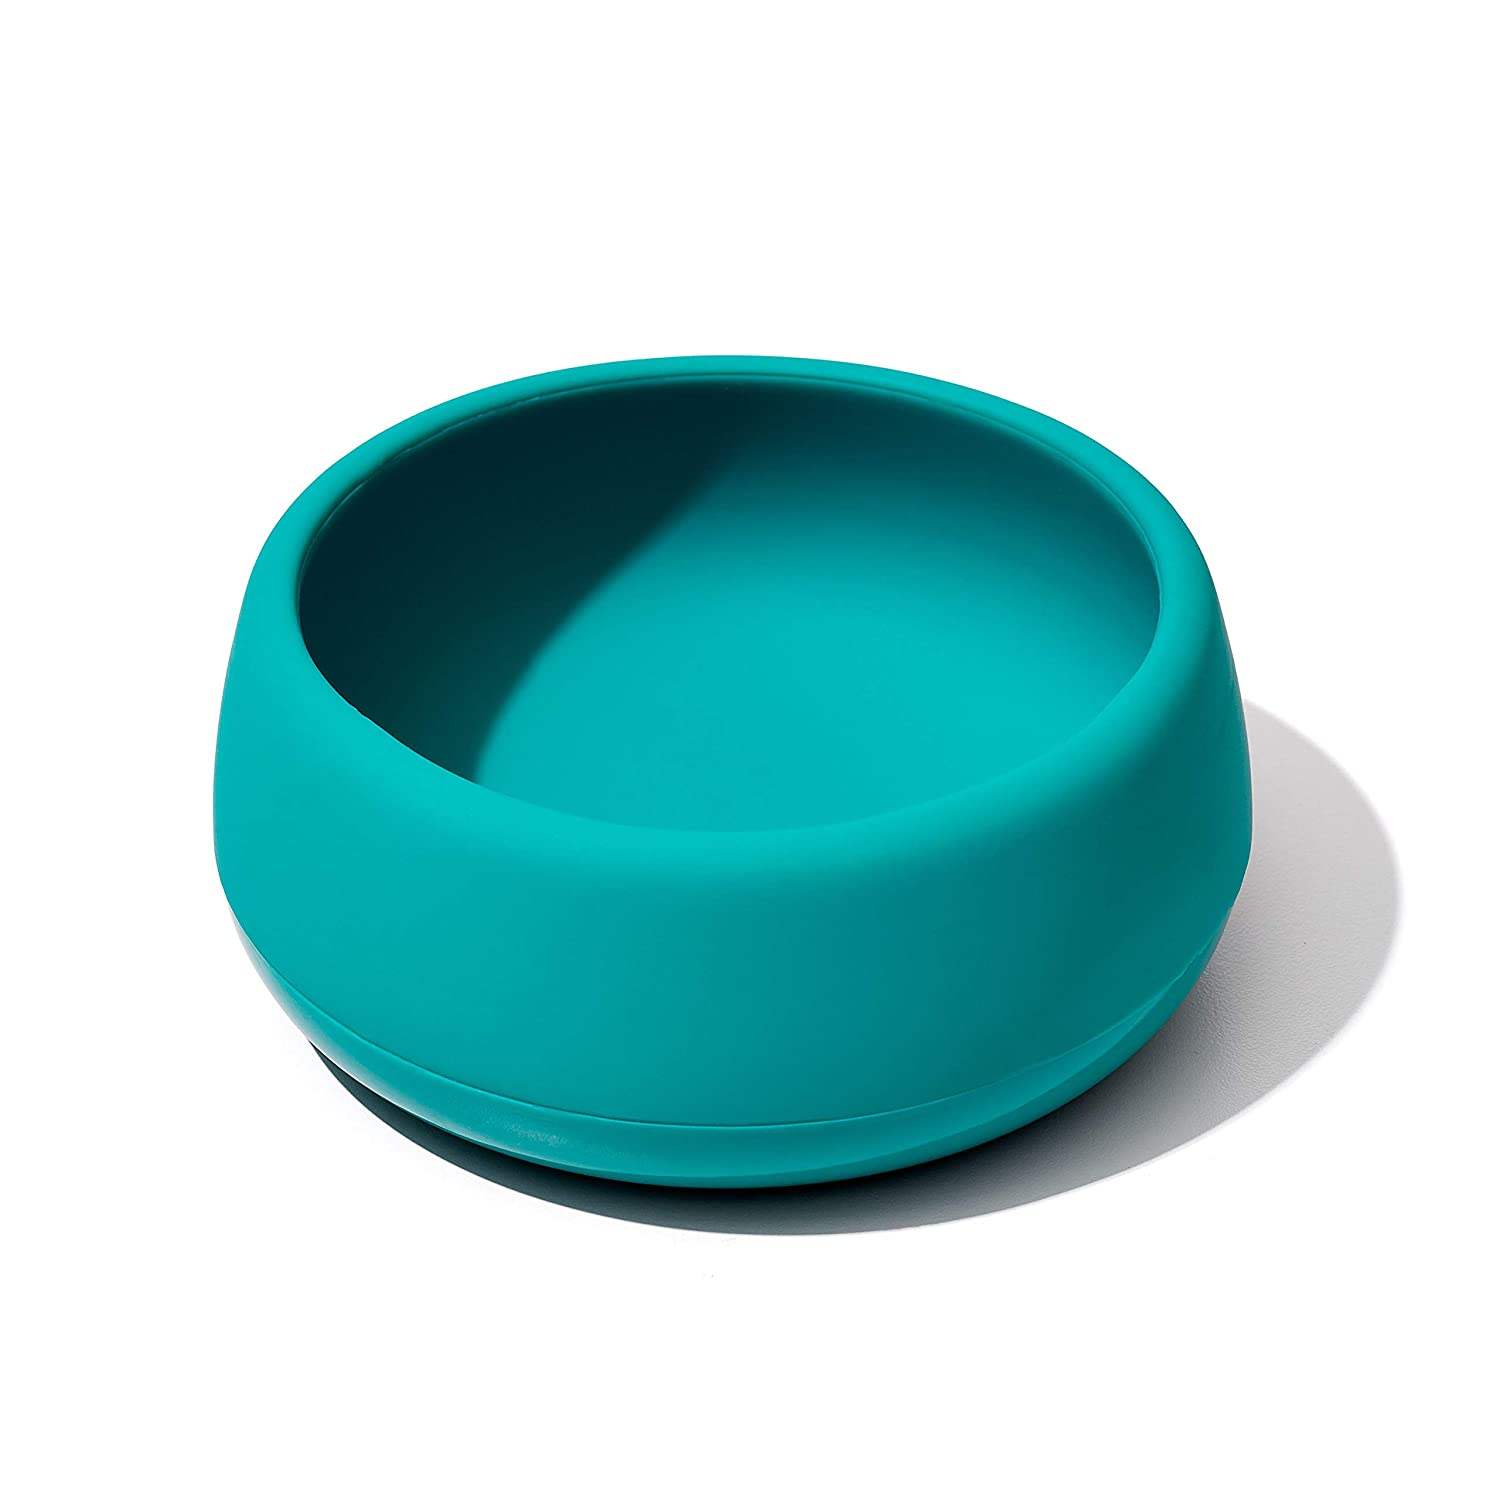 OXO Tot Silicone Bowl Teal